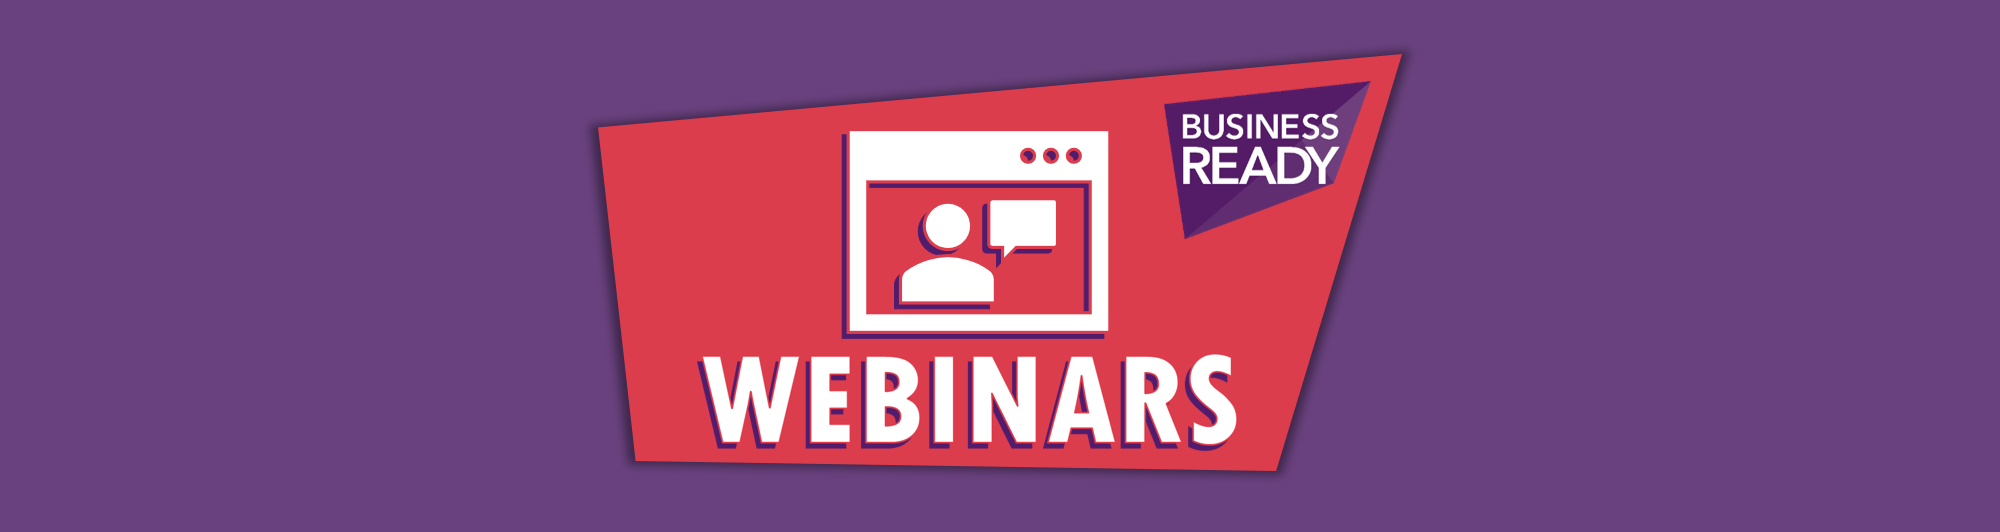 New Business Ready SME Webinar Series Launched